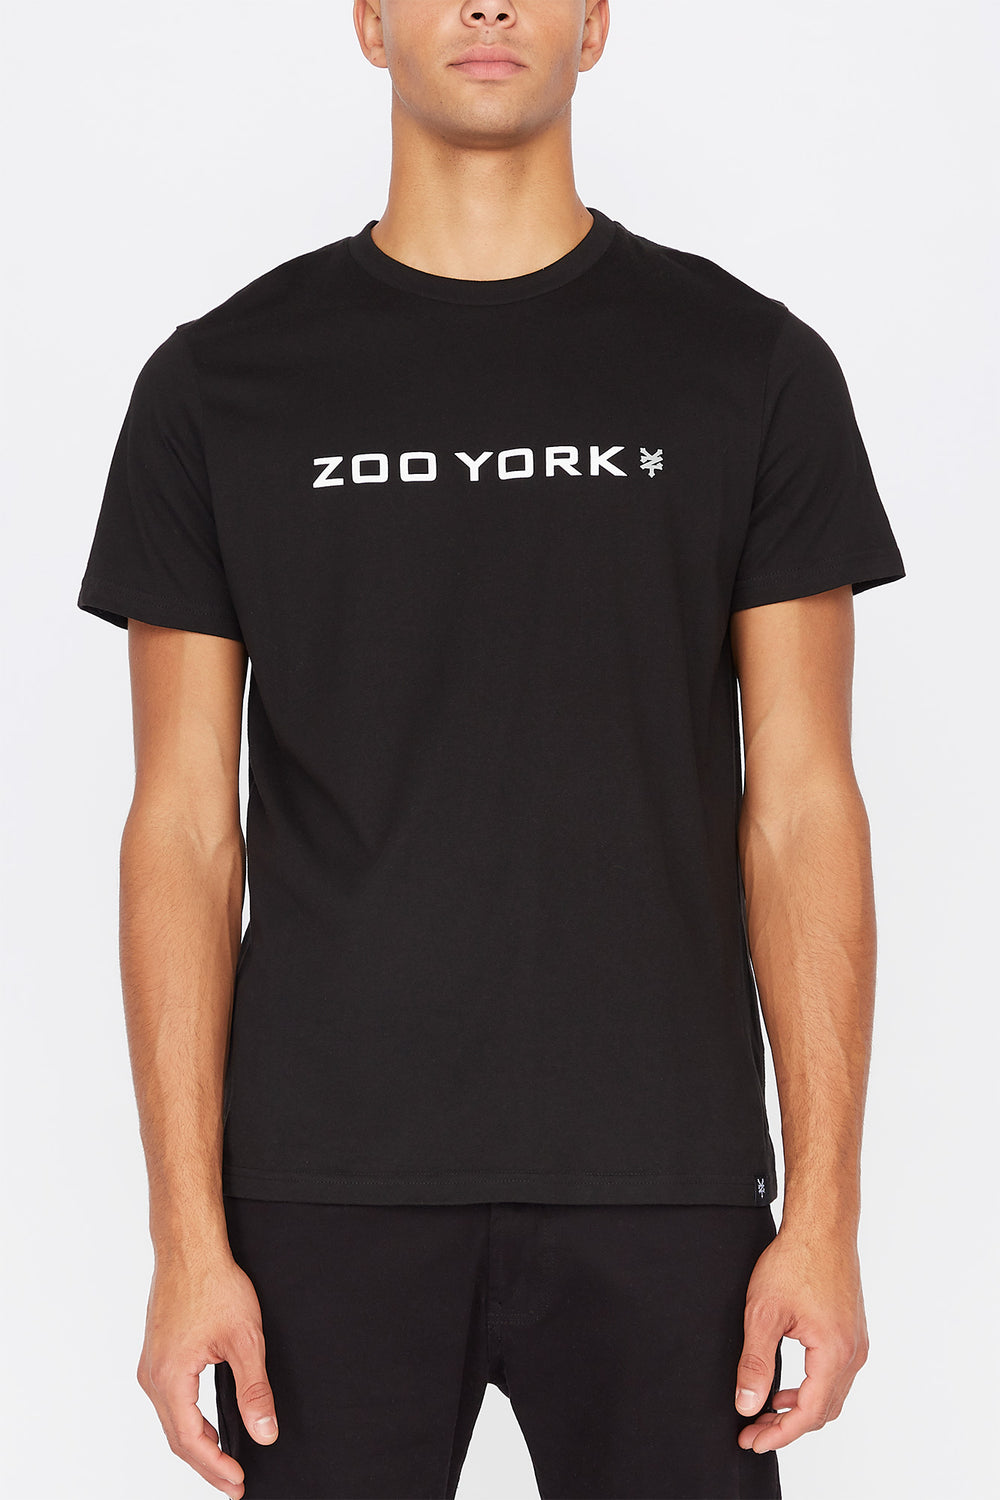 Zoo York Mens Box Logo T-Shirt Black